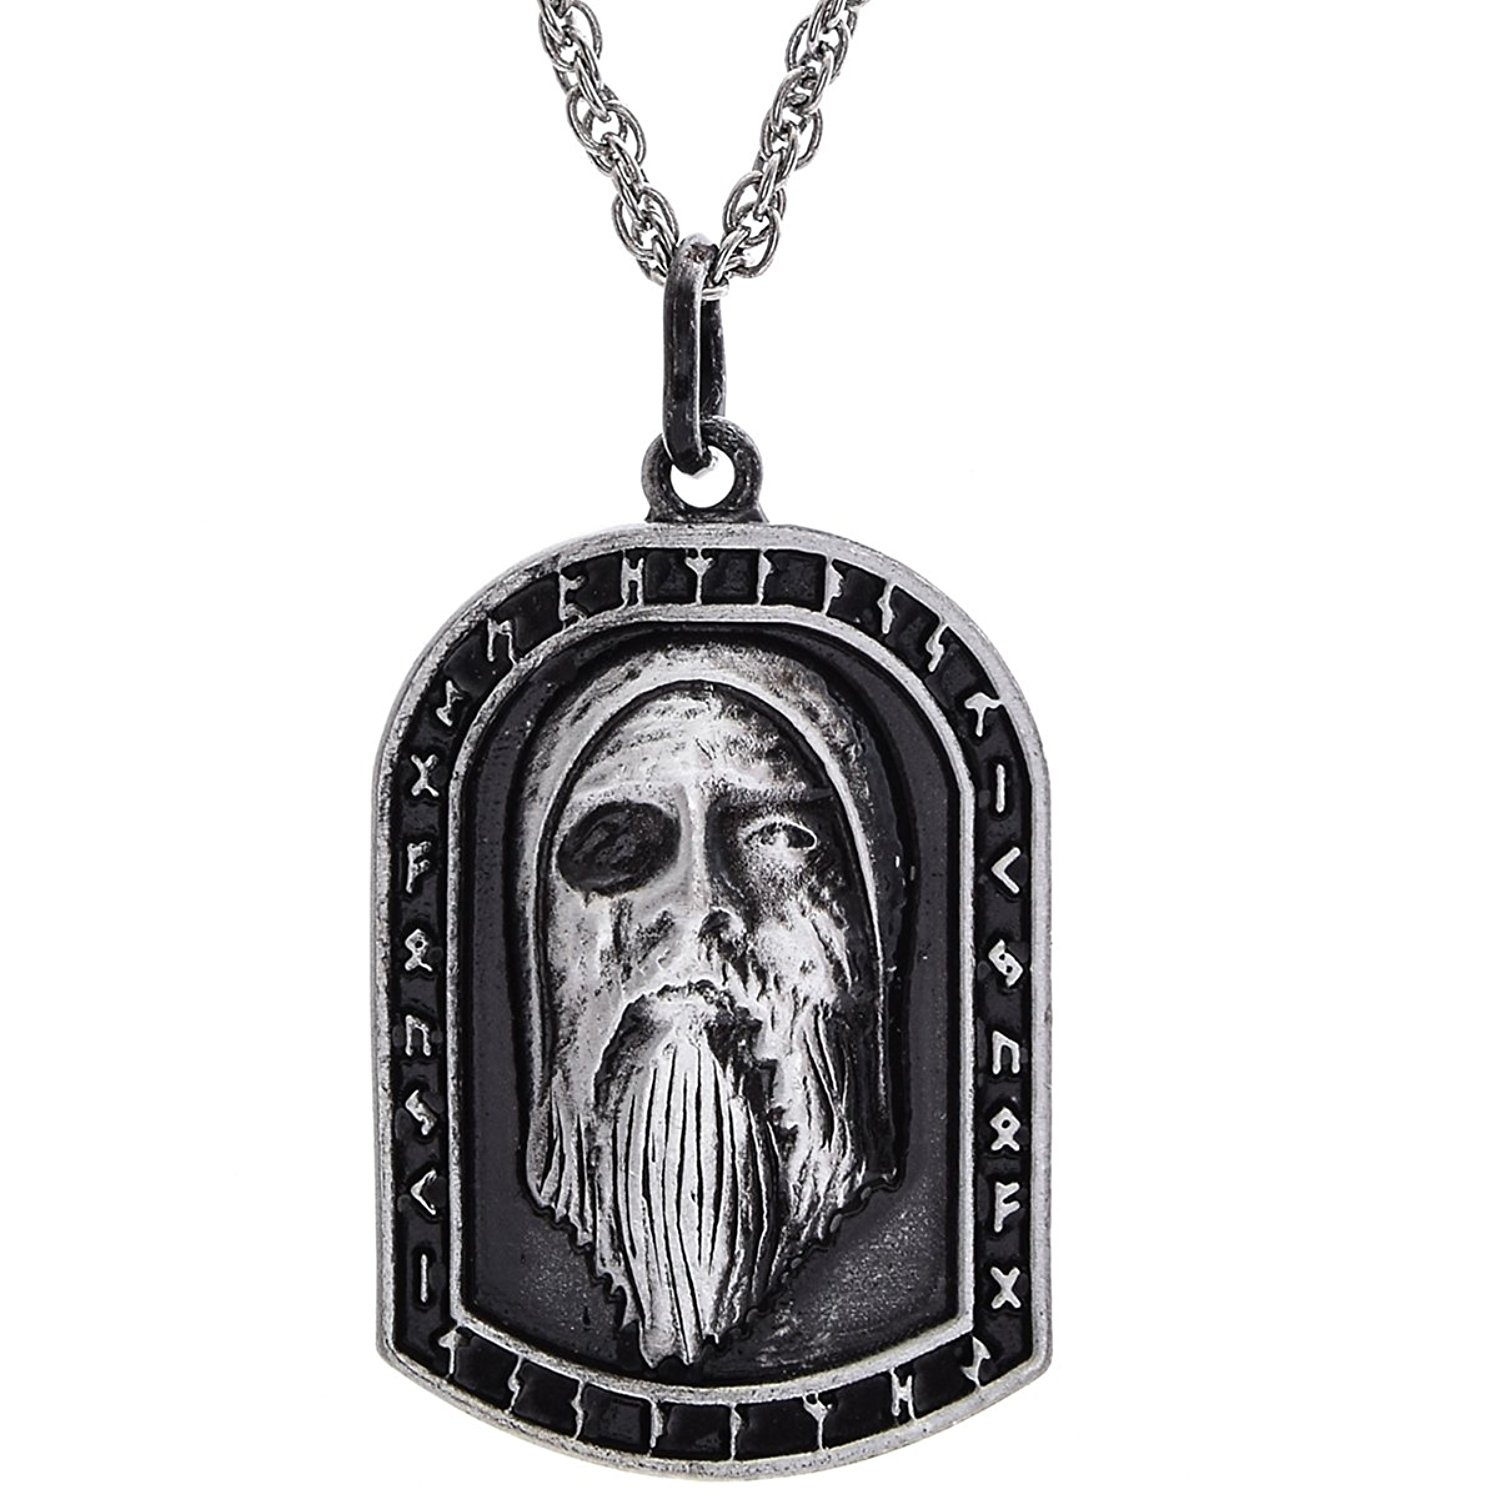 W WOOGGE Men's Necklace Viking Jewelry Norse Amulet Helm Of Awe Raven Skull Pendant Gothic Necklace for Women Men